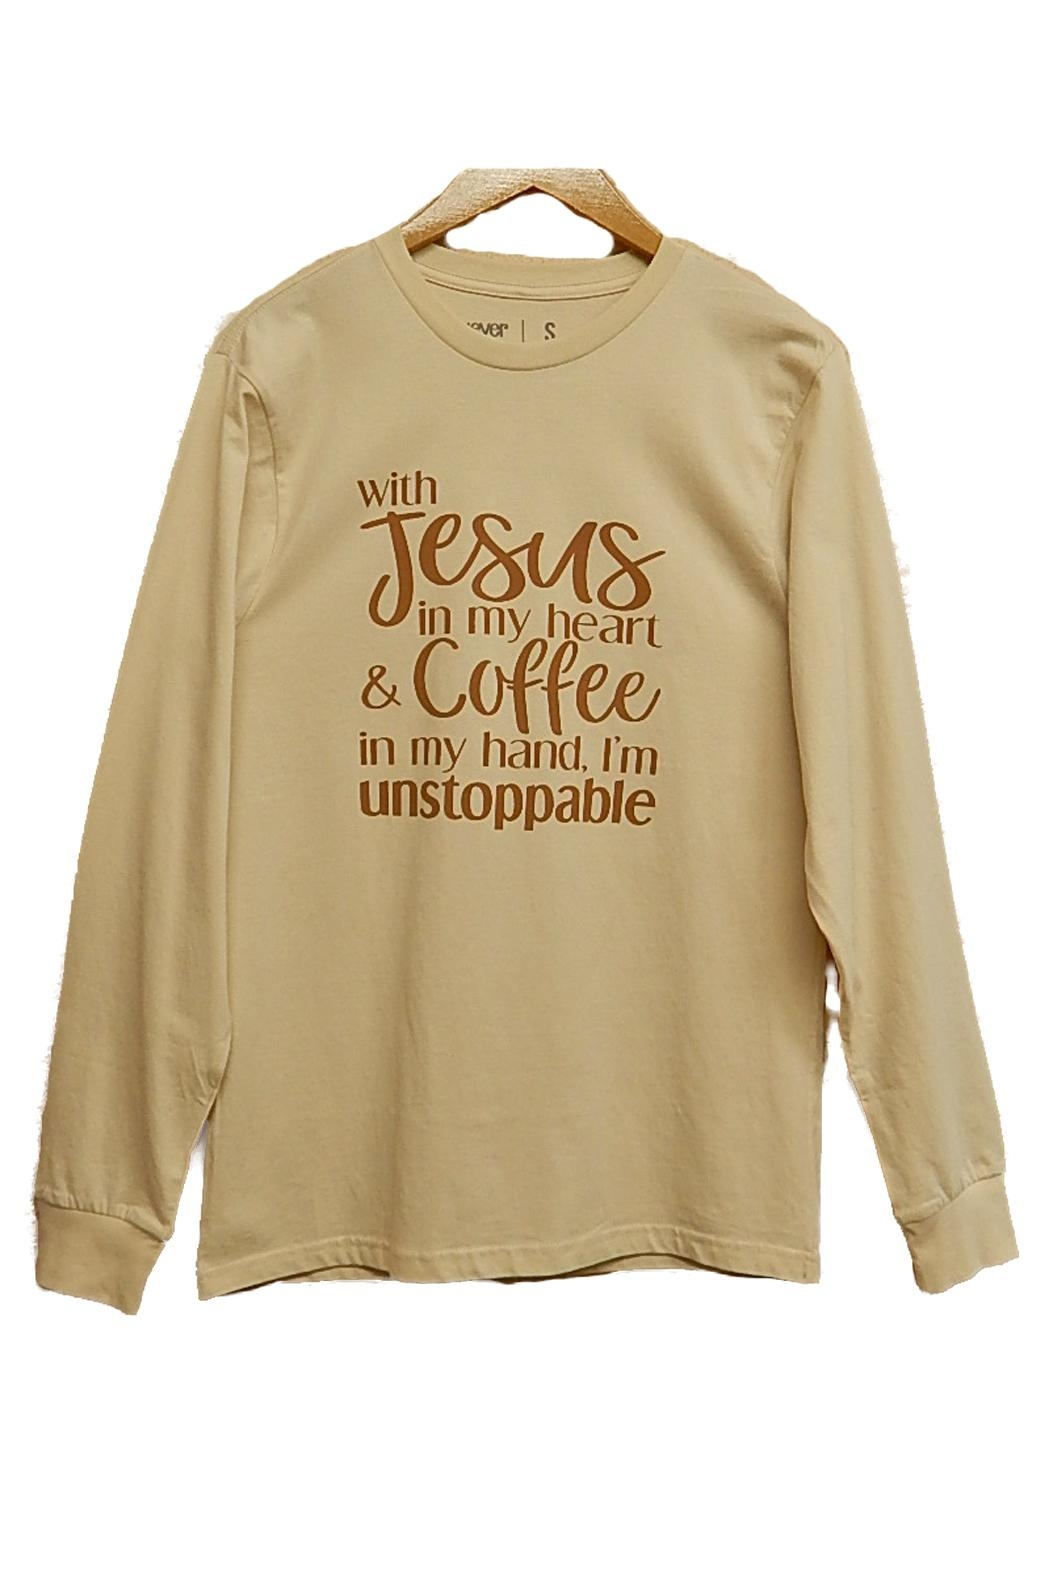 Never Lose Hope Designs Unstoppable Top - Main Image